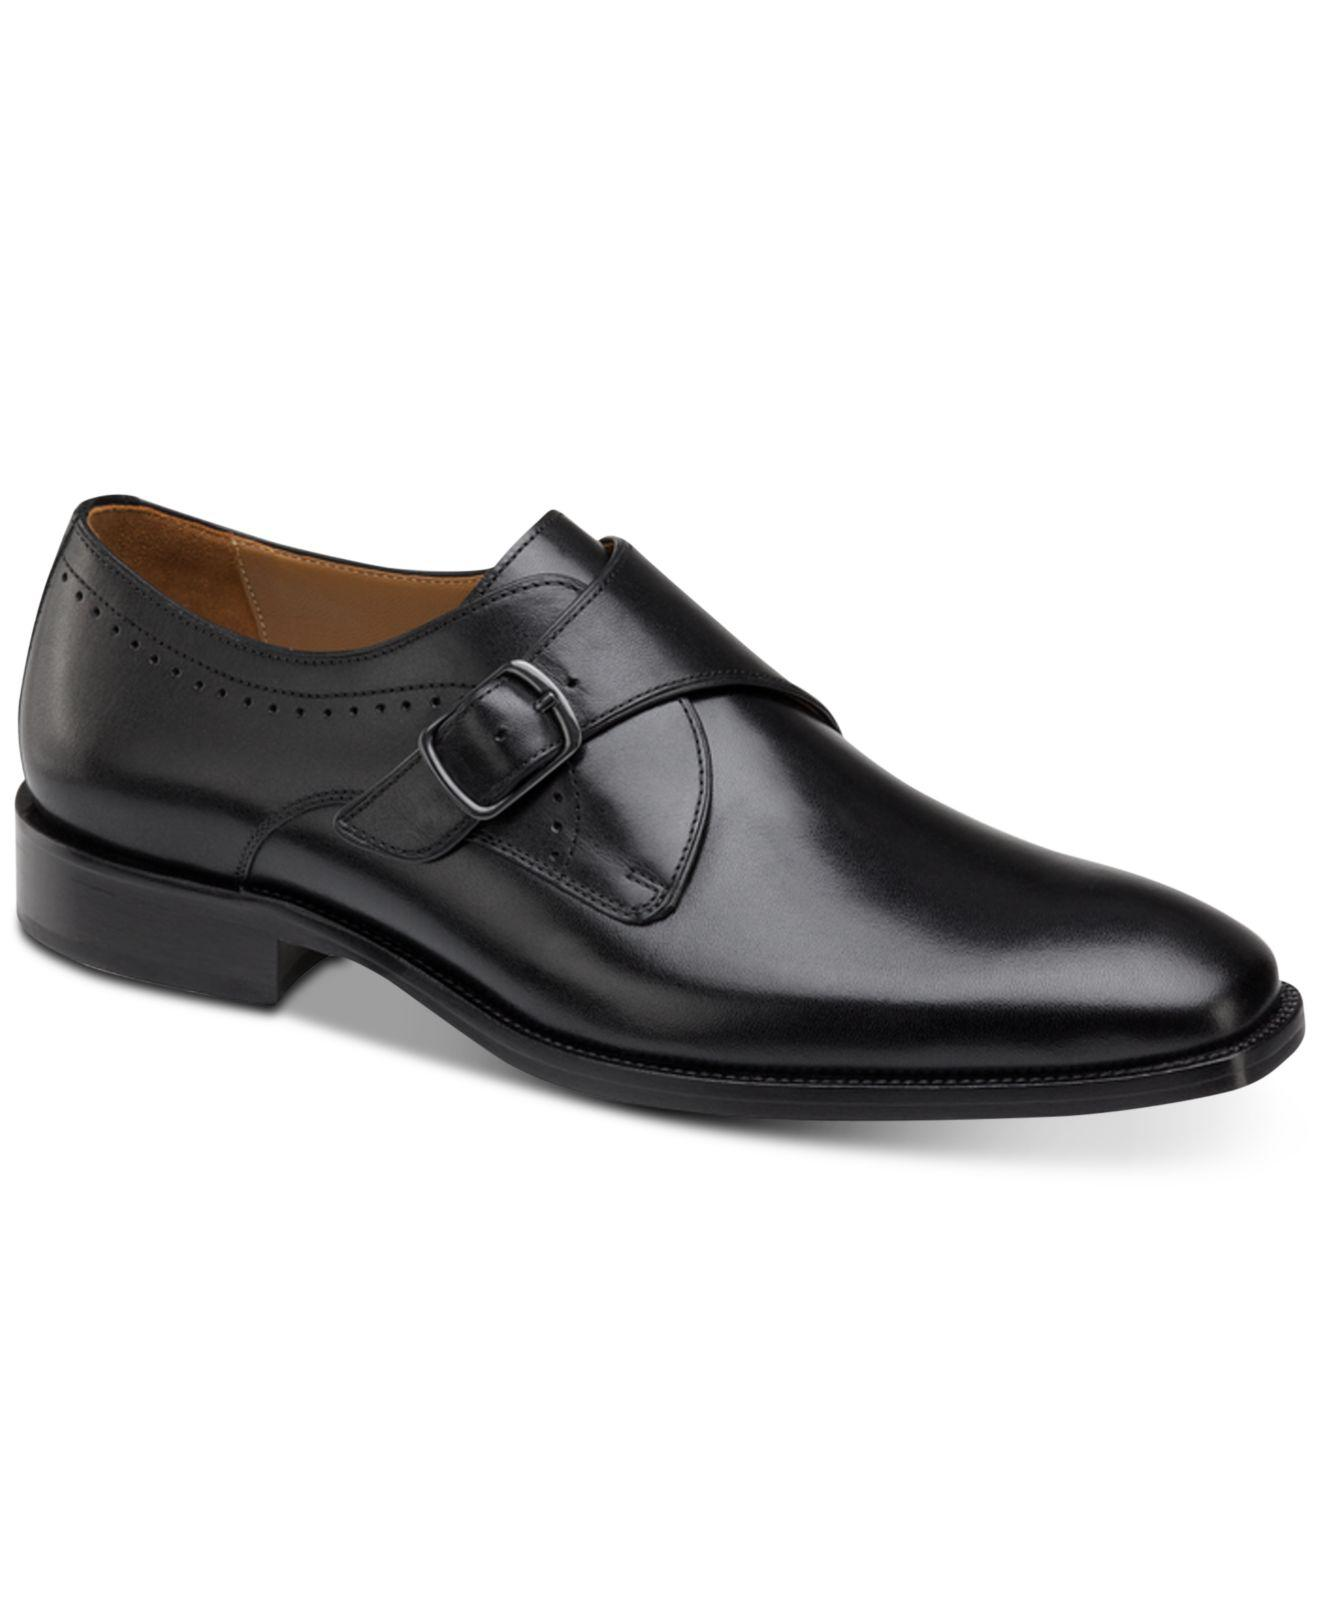 656cbc49311 Lyst - Johnston   Murphy Sanborn Monk Strap Loafers in Black for Men